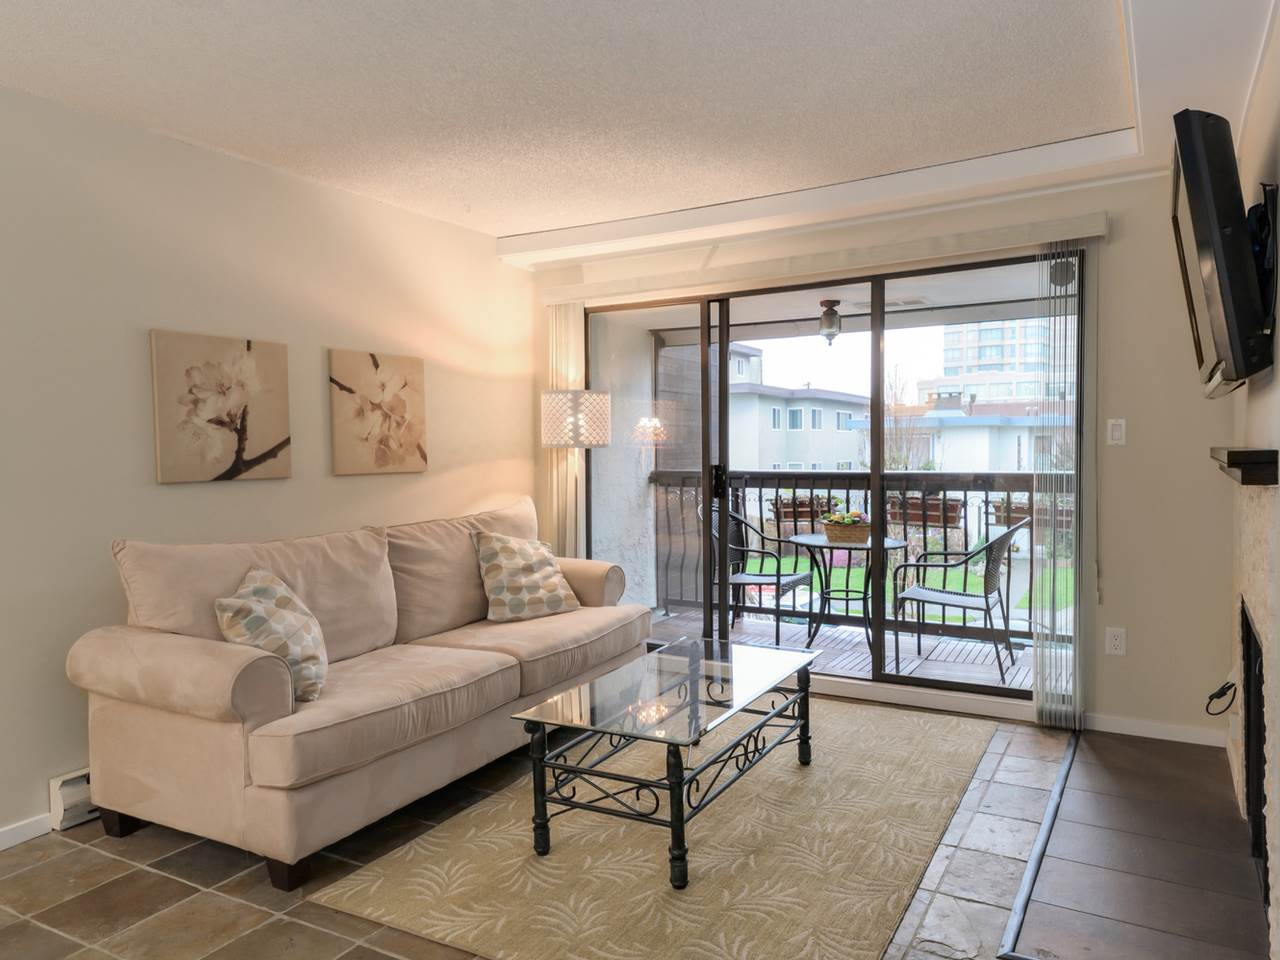 "Photo 2: 202 1352 W 10TH Avenue in Vancouver: Fairview VW Condo for sale in ""Tell Manor"" (Vancouver West)  : MLS® # R2035626"